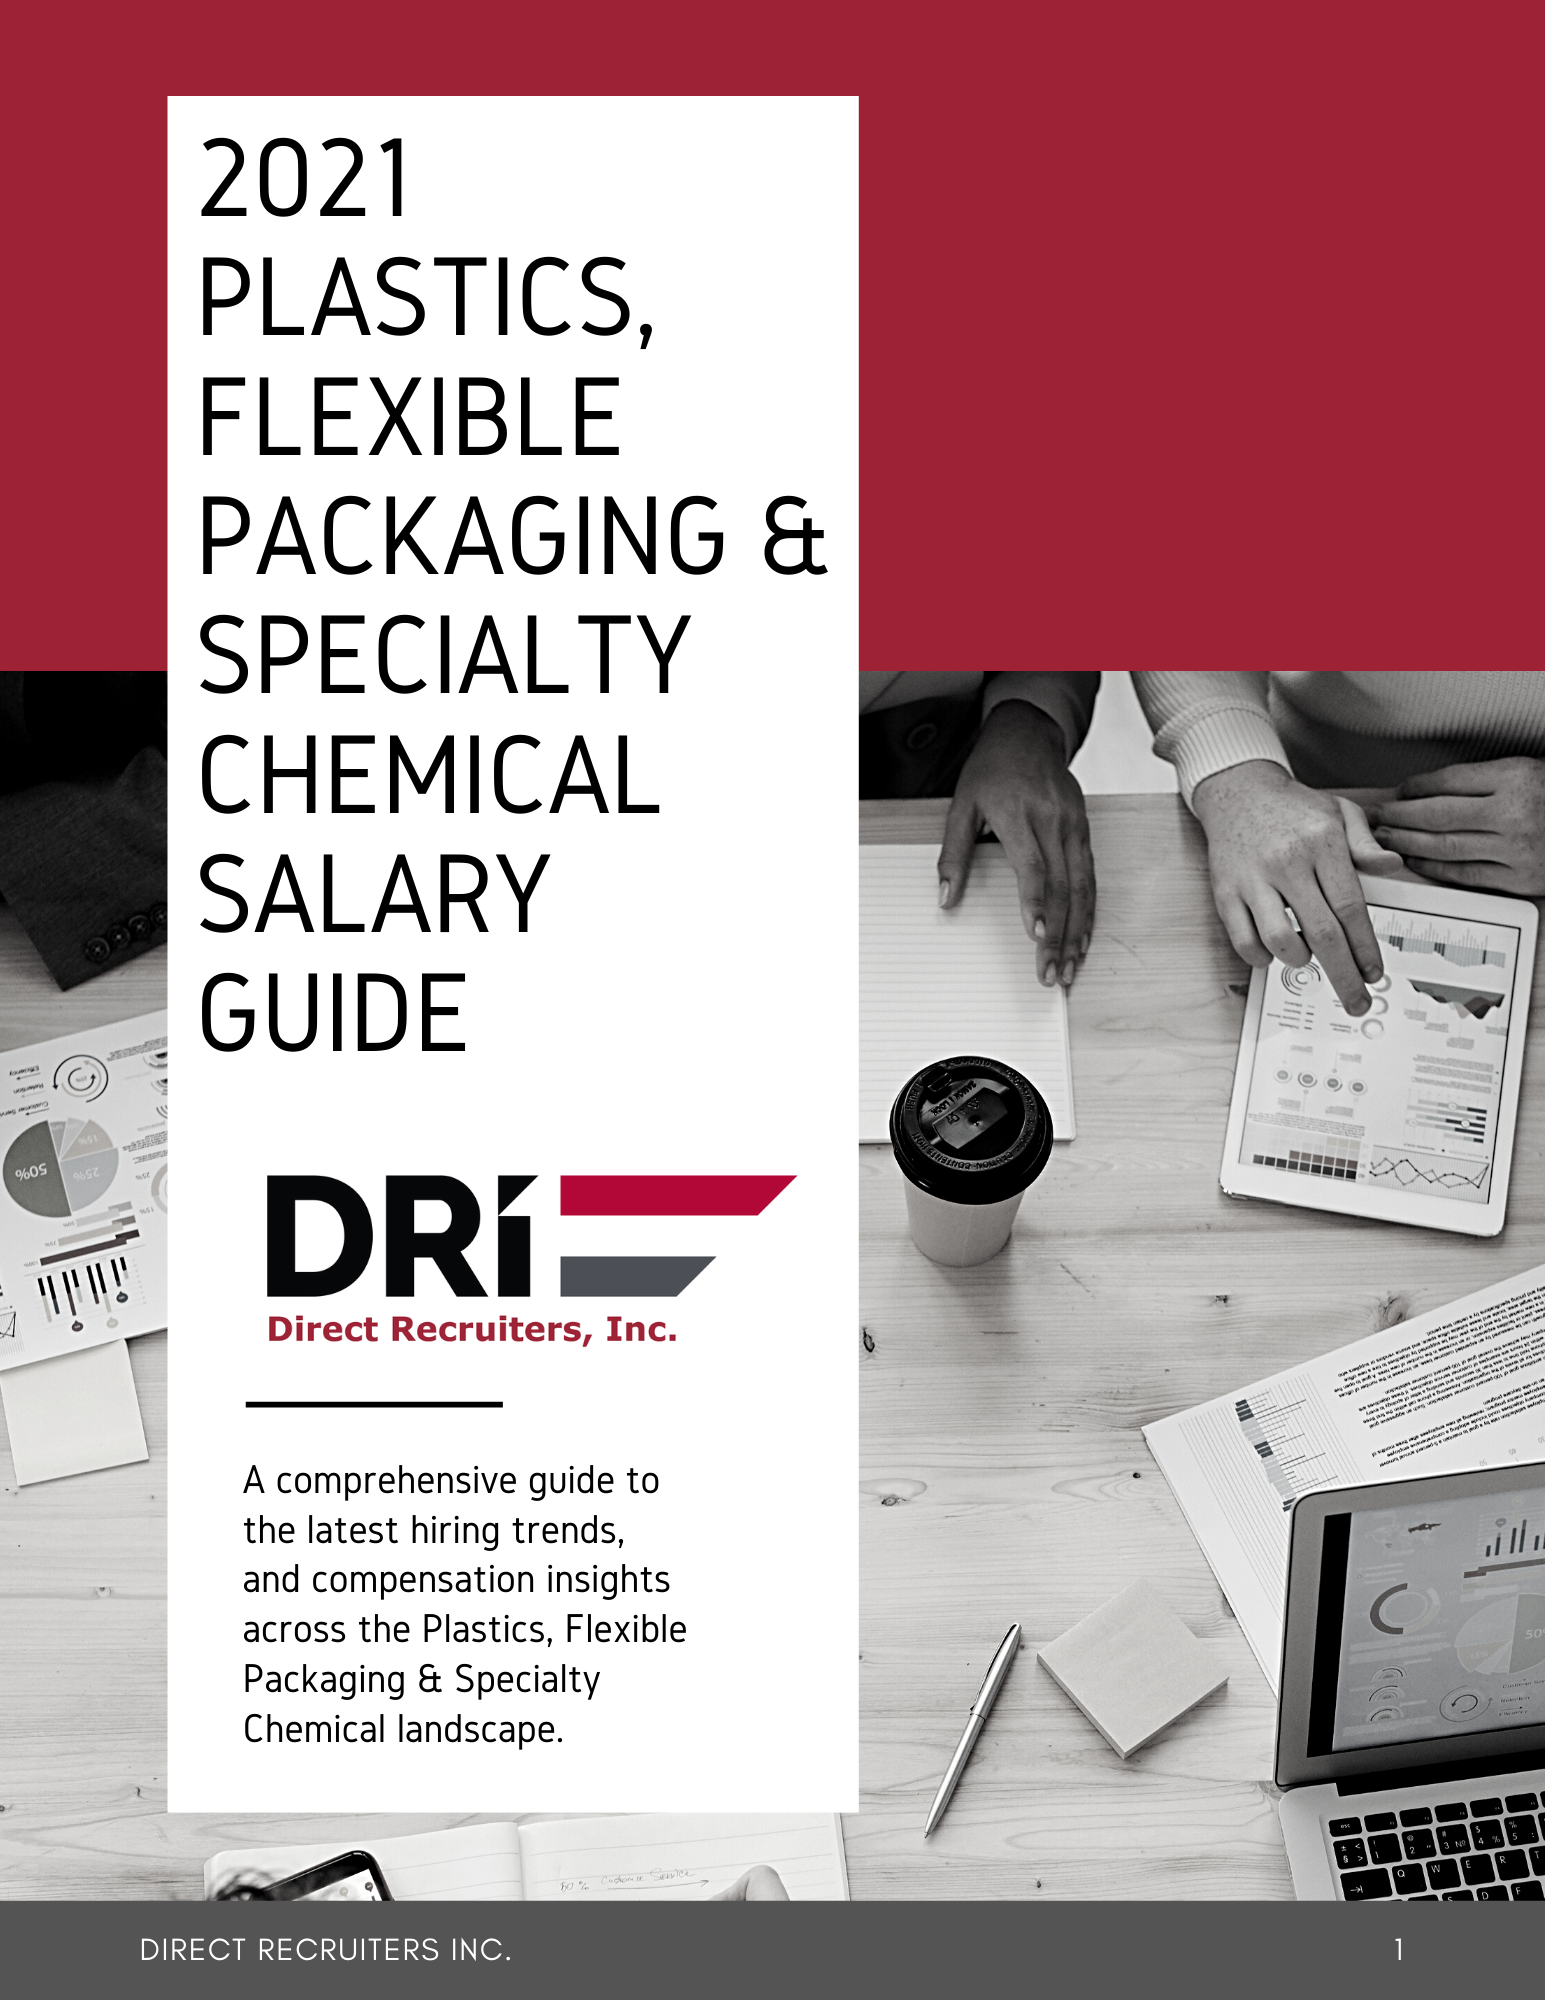 Direct Recruiters 2021 Plastics and Flexible Packaging Salary Guide 5.14.21